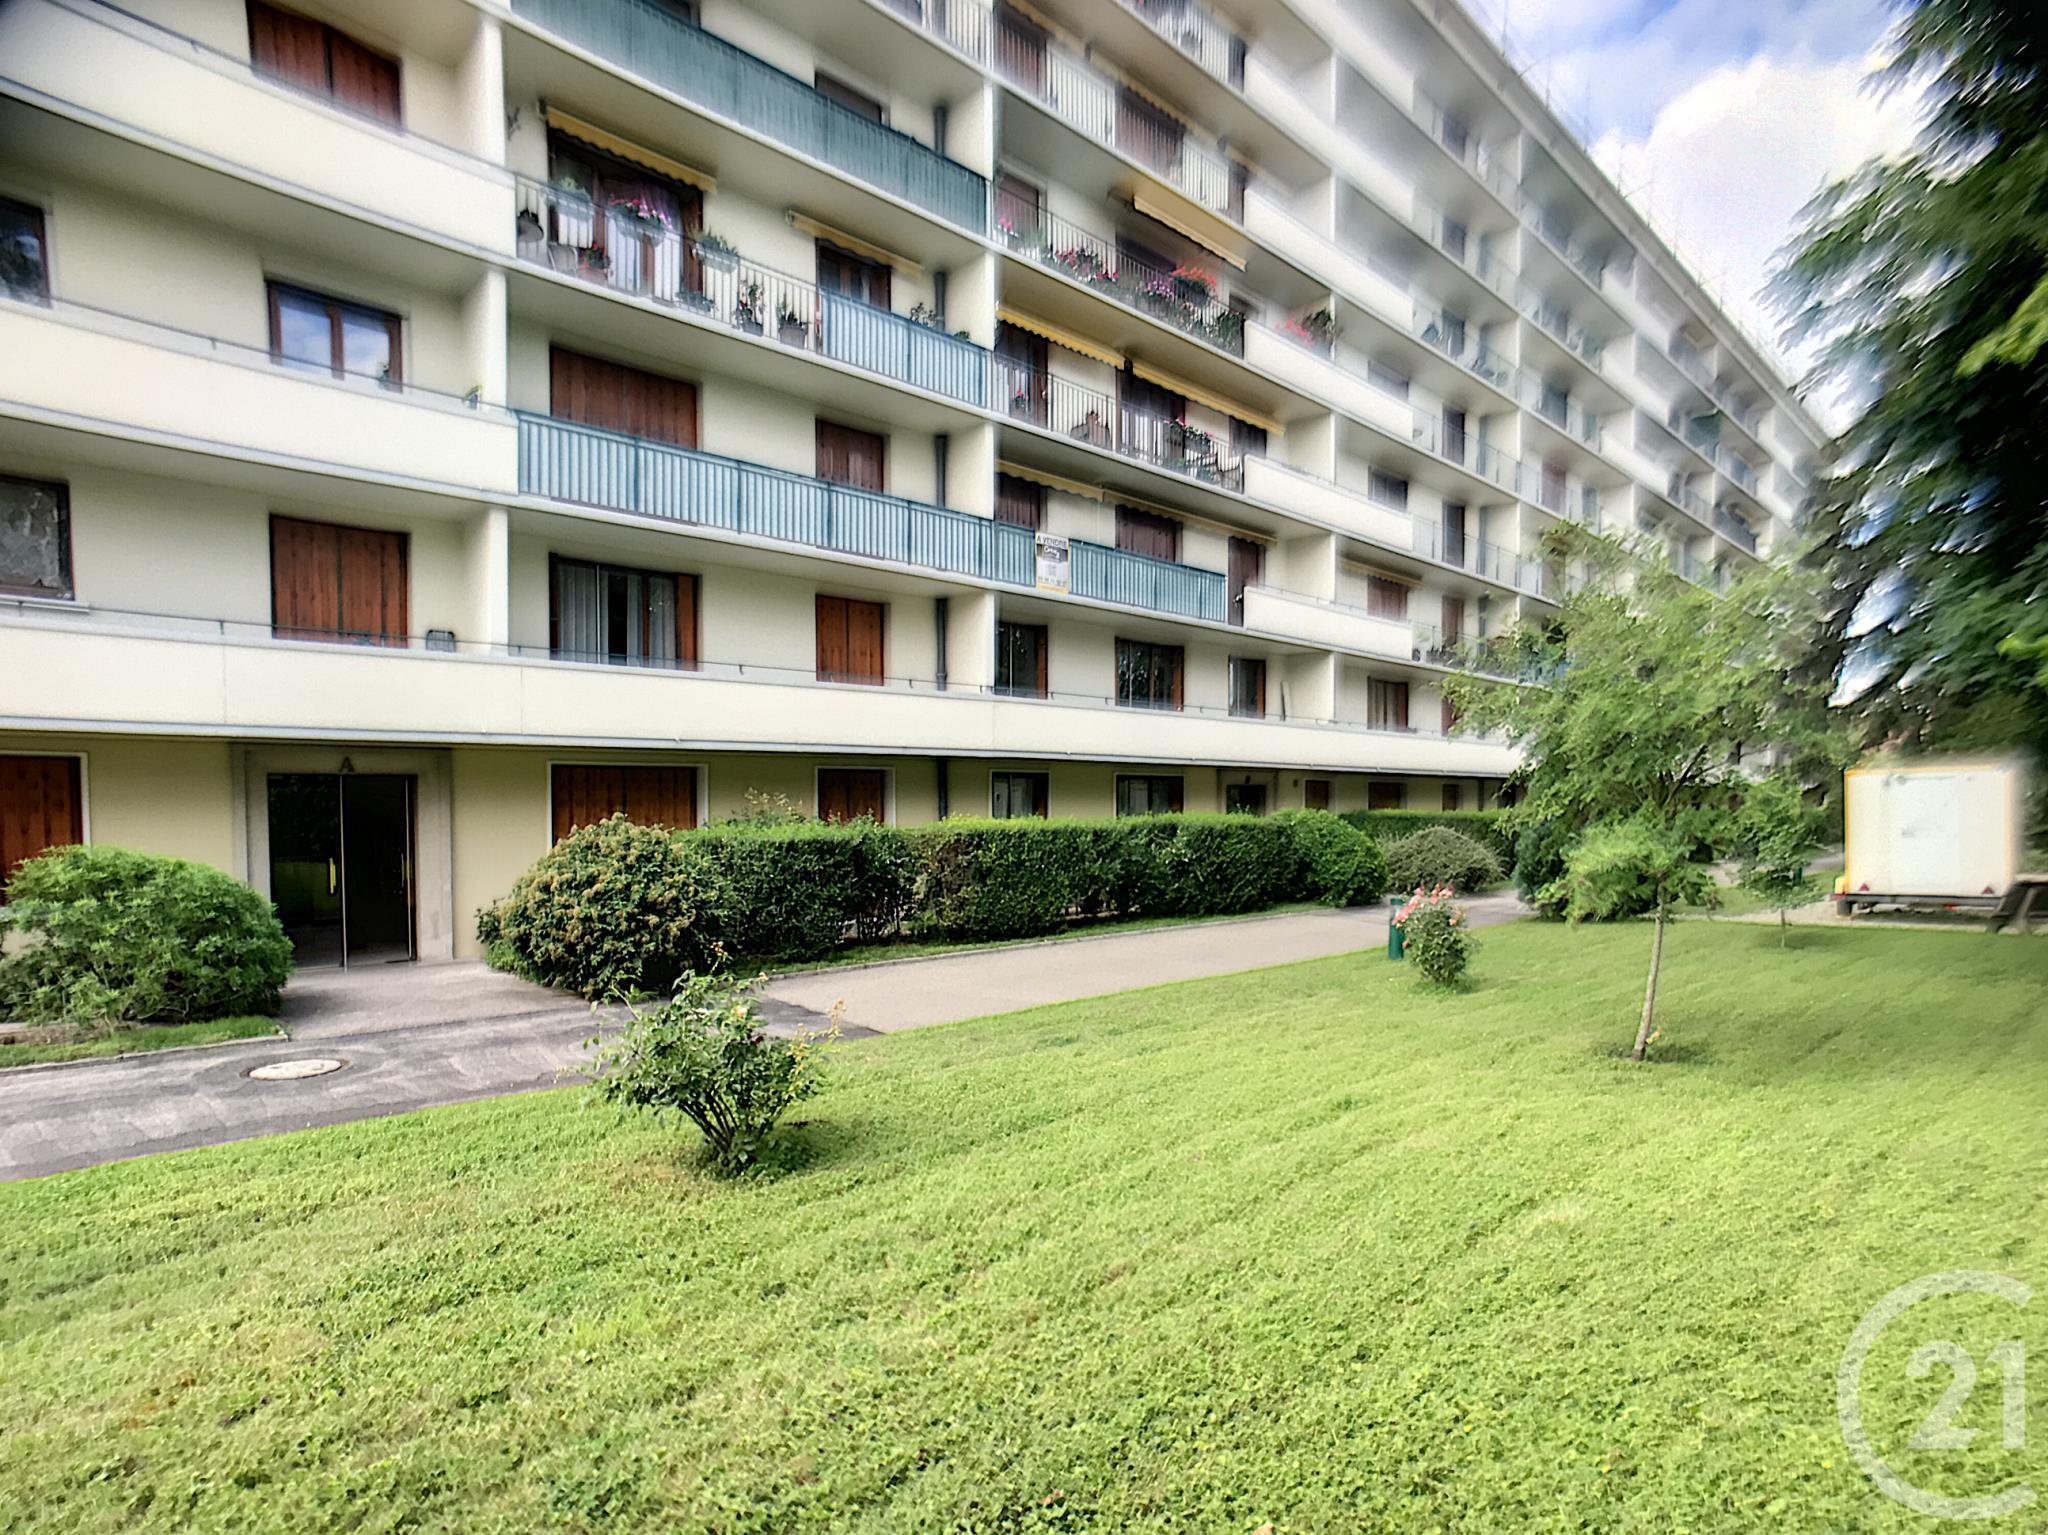 Appartement f4 à vendre - 4 pièces - 83 m2 - TROYES - 10 - CHAMPAGNE-ARDENNE